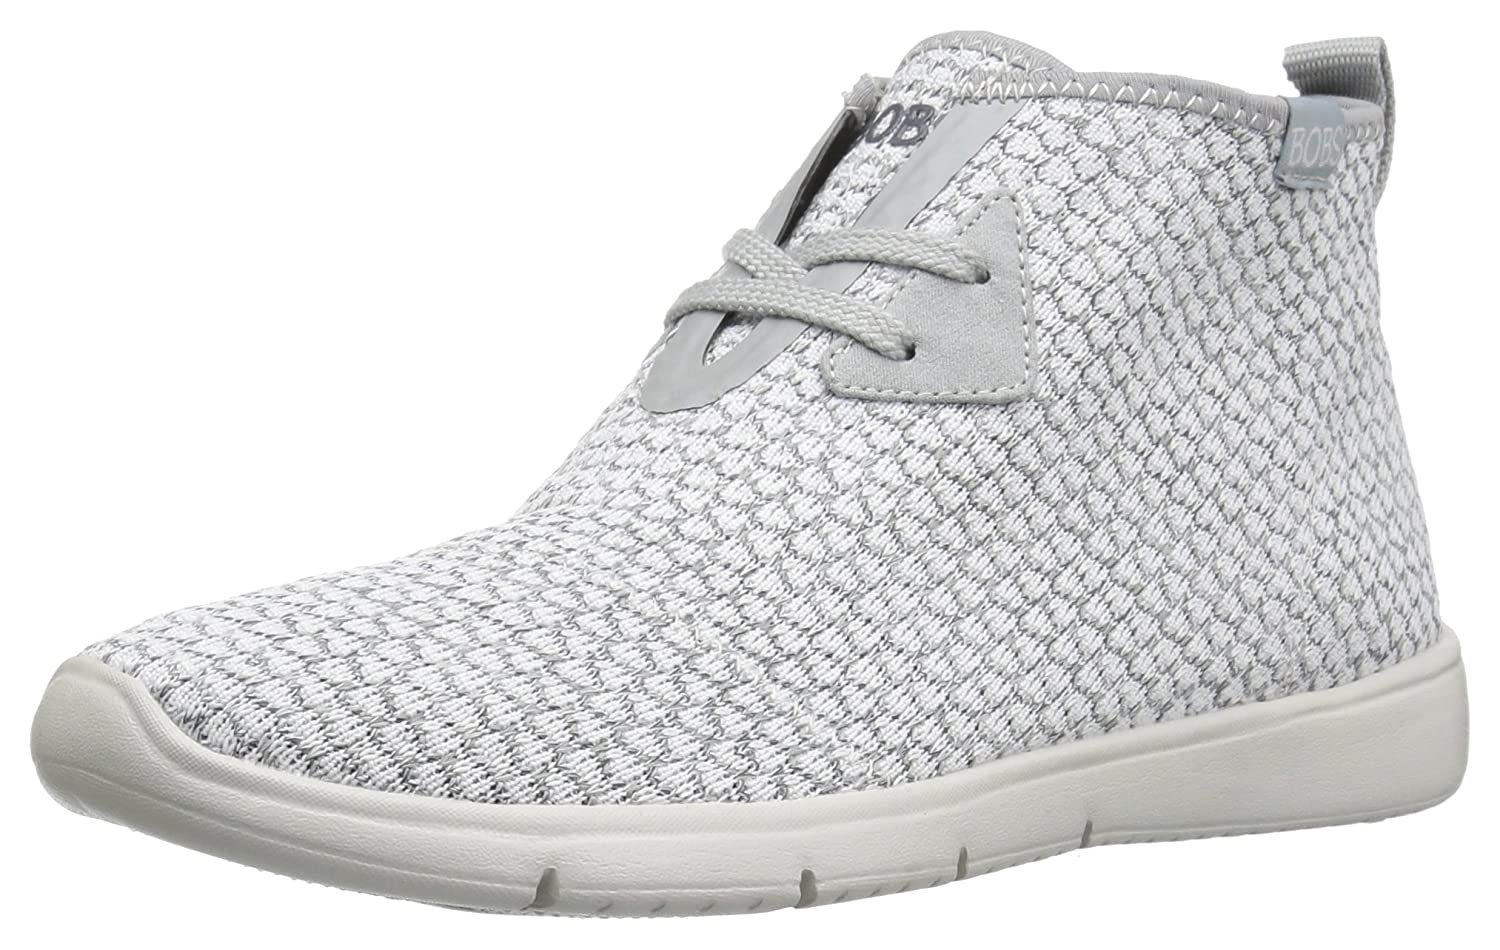 Skechers BOBS from Women's Pureflex 2-Knockoutz Flat B005AEFOJ8 8 B(M) US|White/Gray